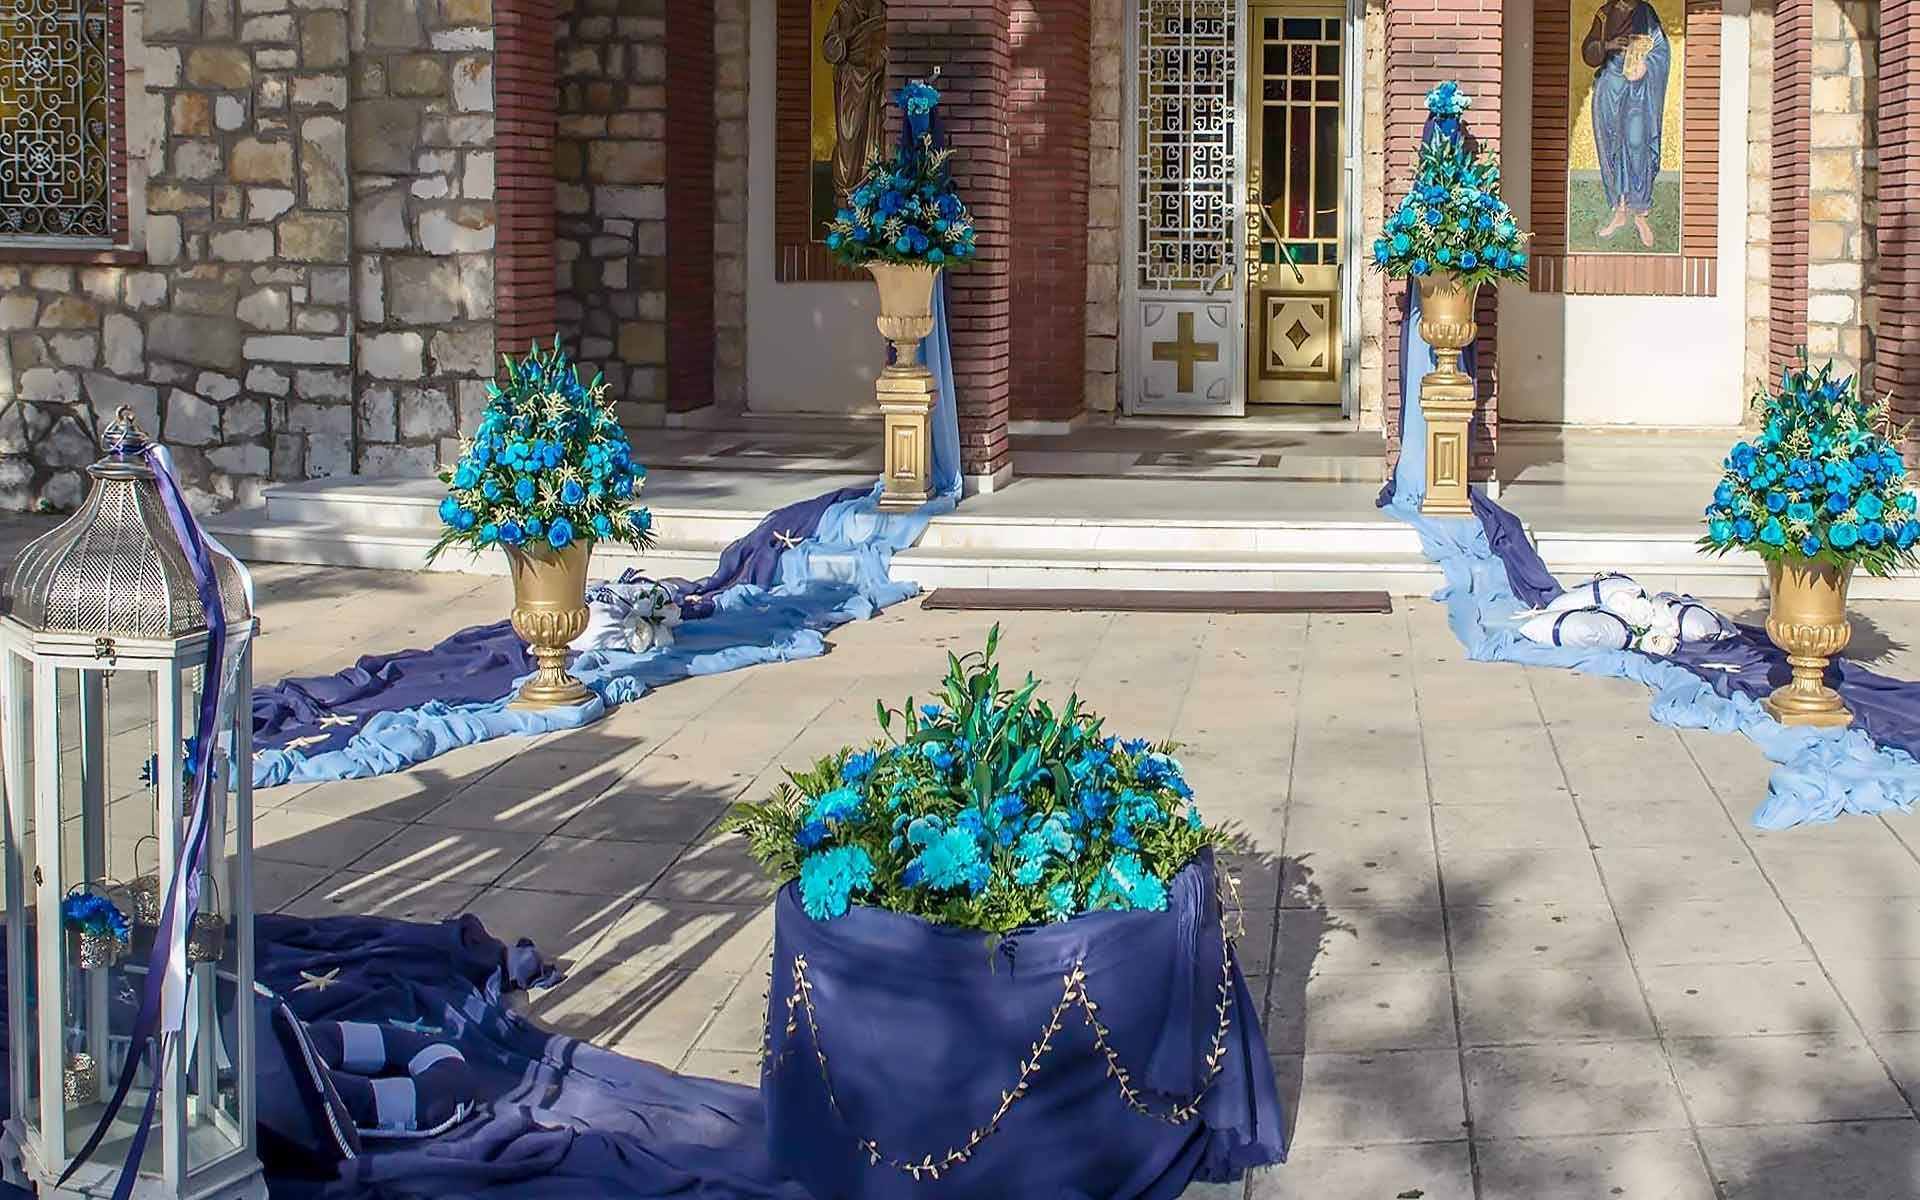 Golden-Columns-With-Flowers-In-Shades-Of-Blue-by-Diamond-Events-christening